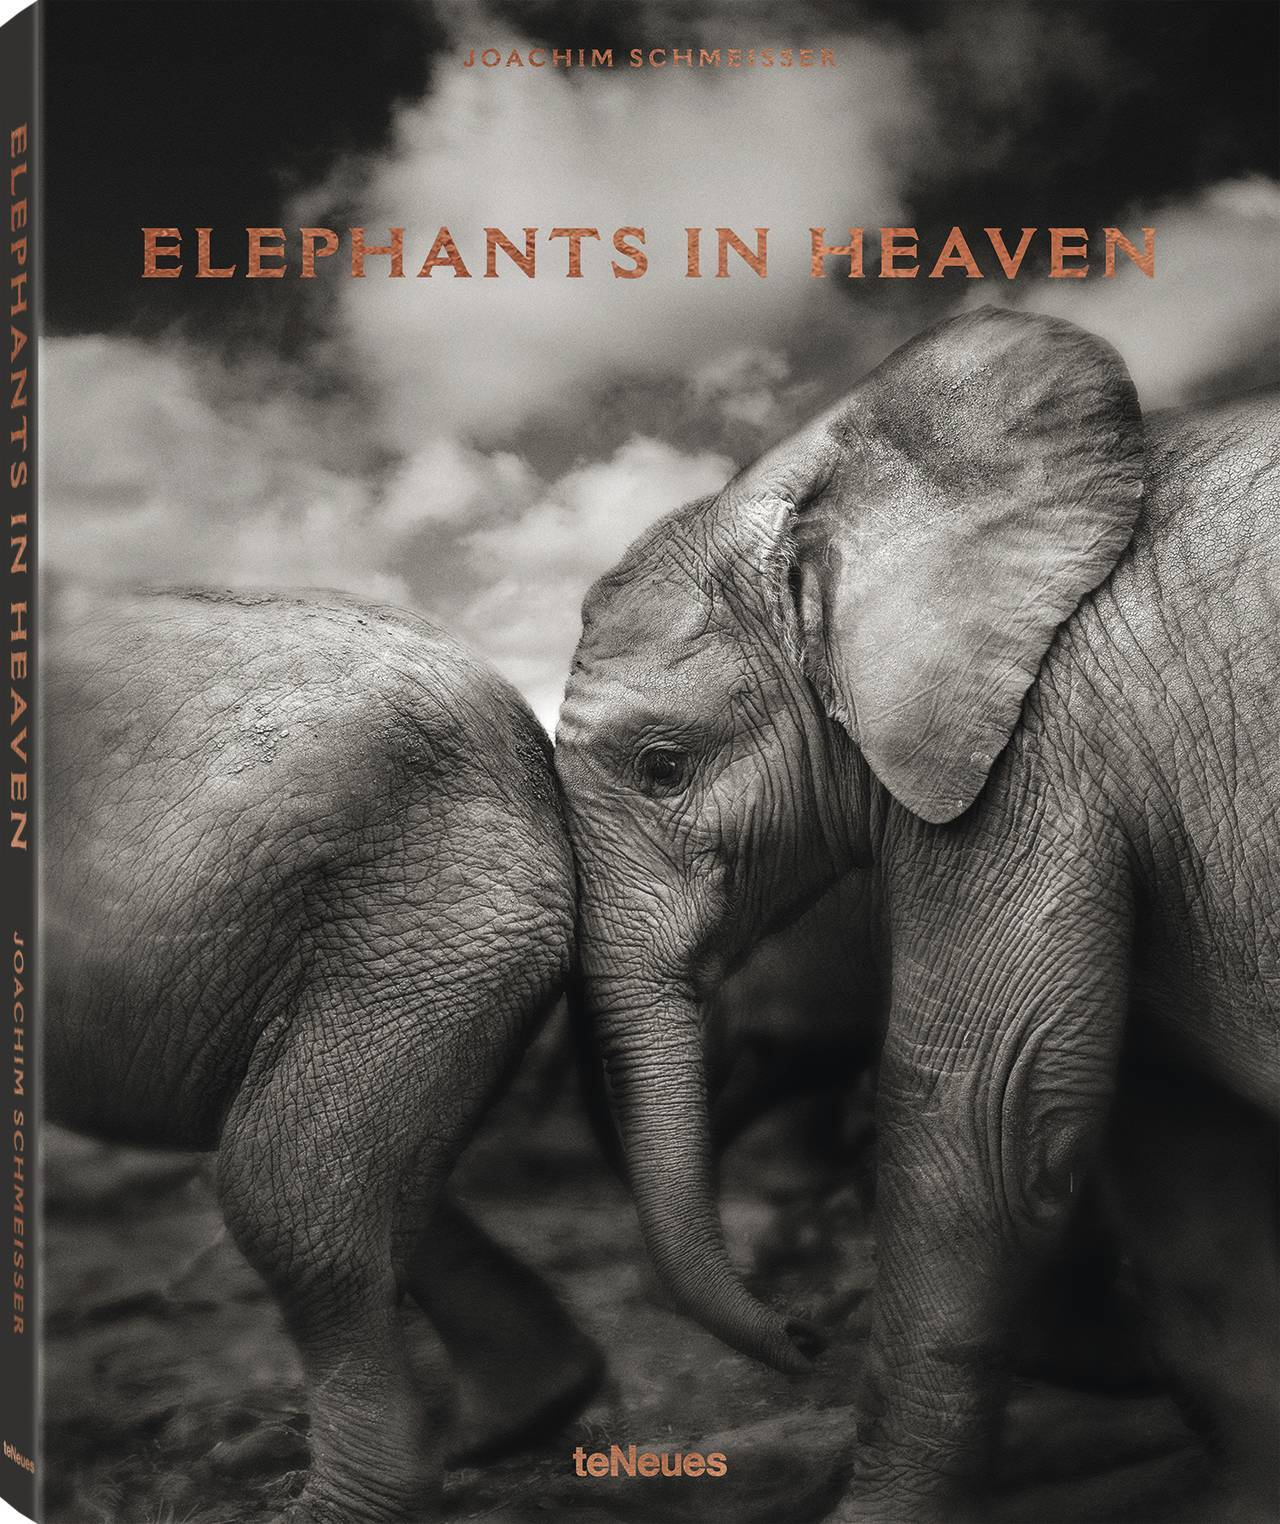 © Elephants in Heaven by Joachim Schmeisser, published by teNeues, www.teneues.com, Suguta, Kenya 2009, Photo © 2017 Joachim Schmeisser. All rights reserved. www.joachimschmeisser.com